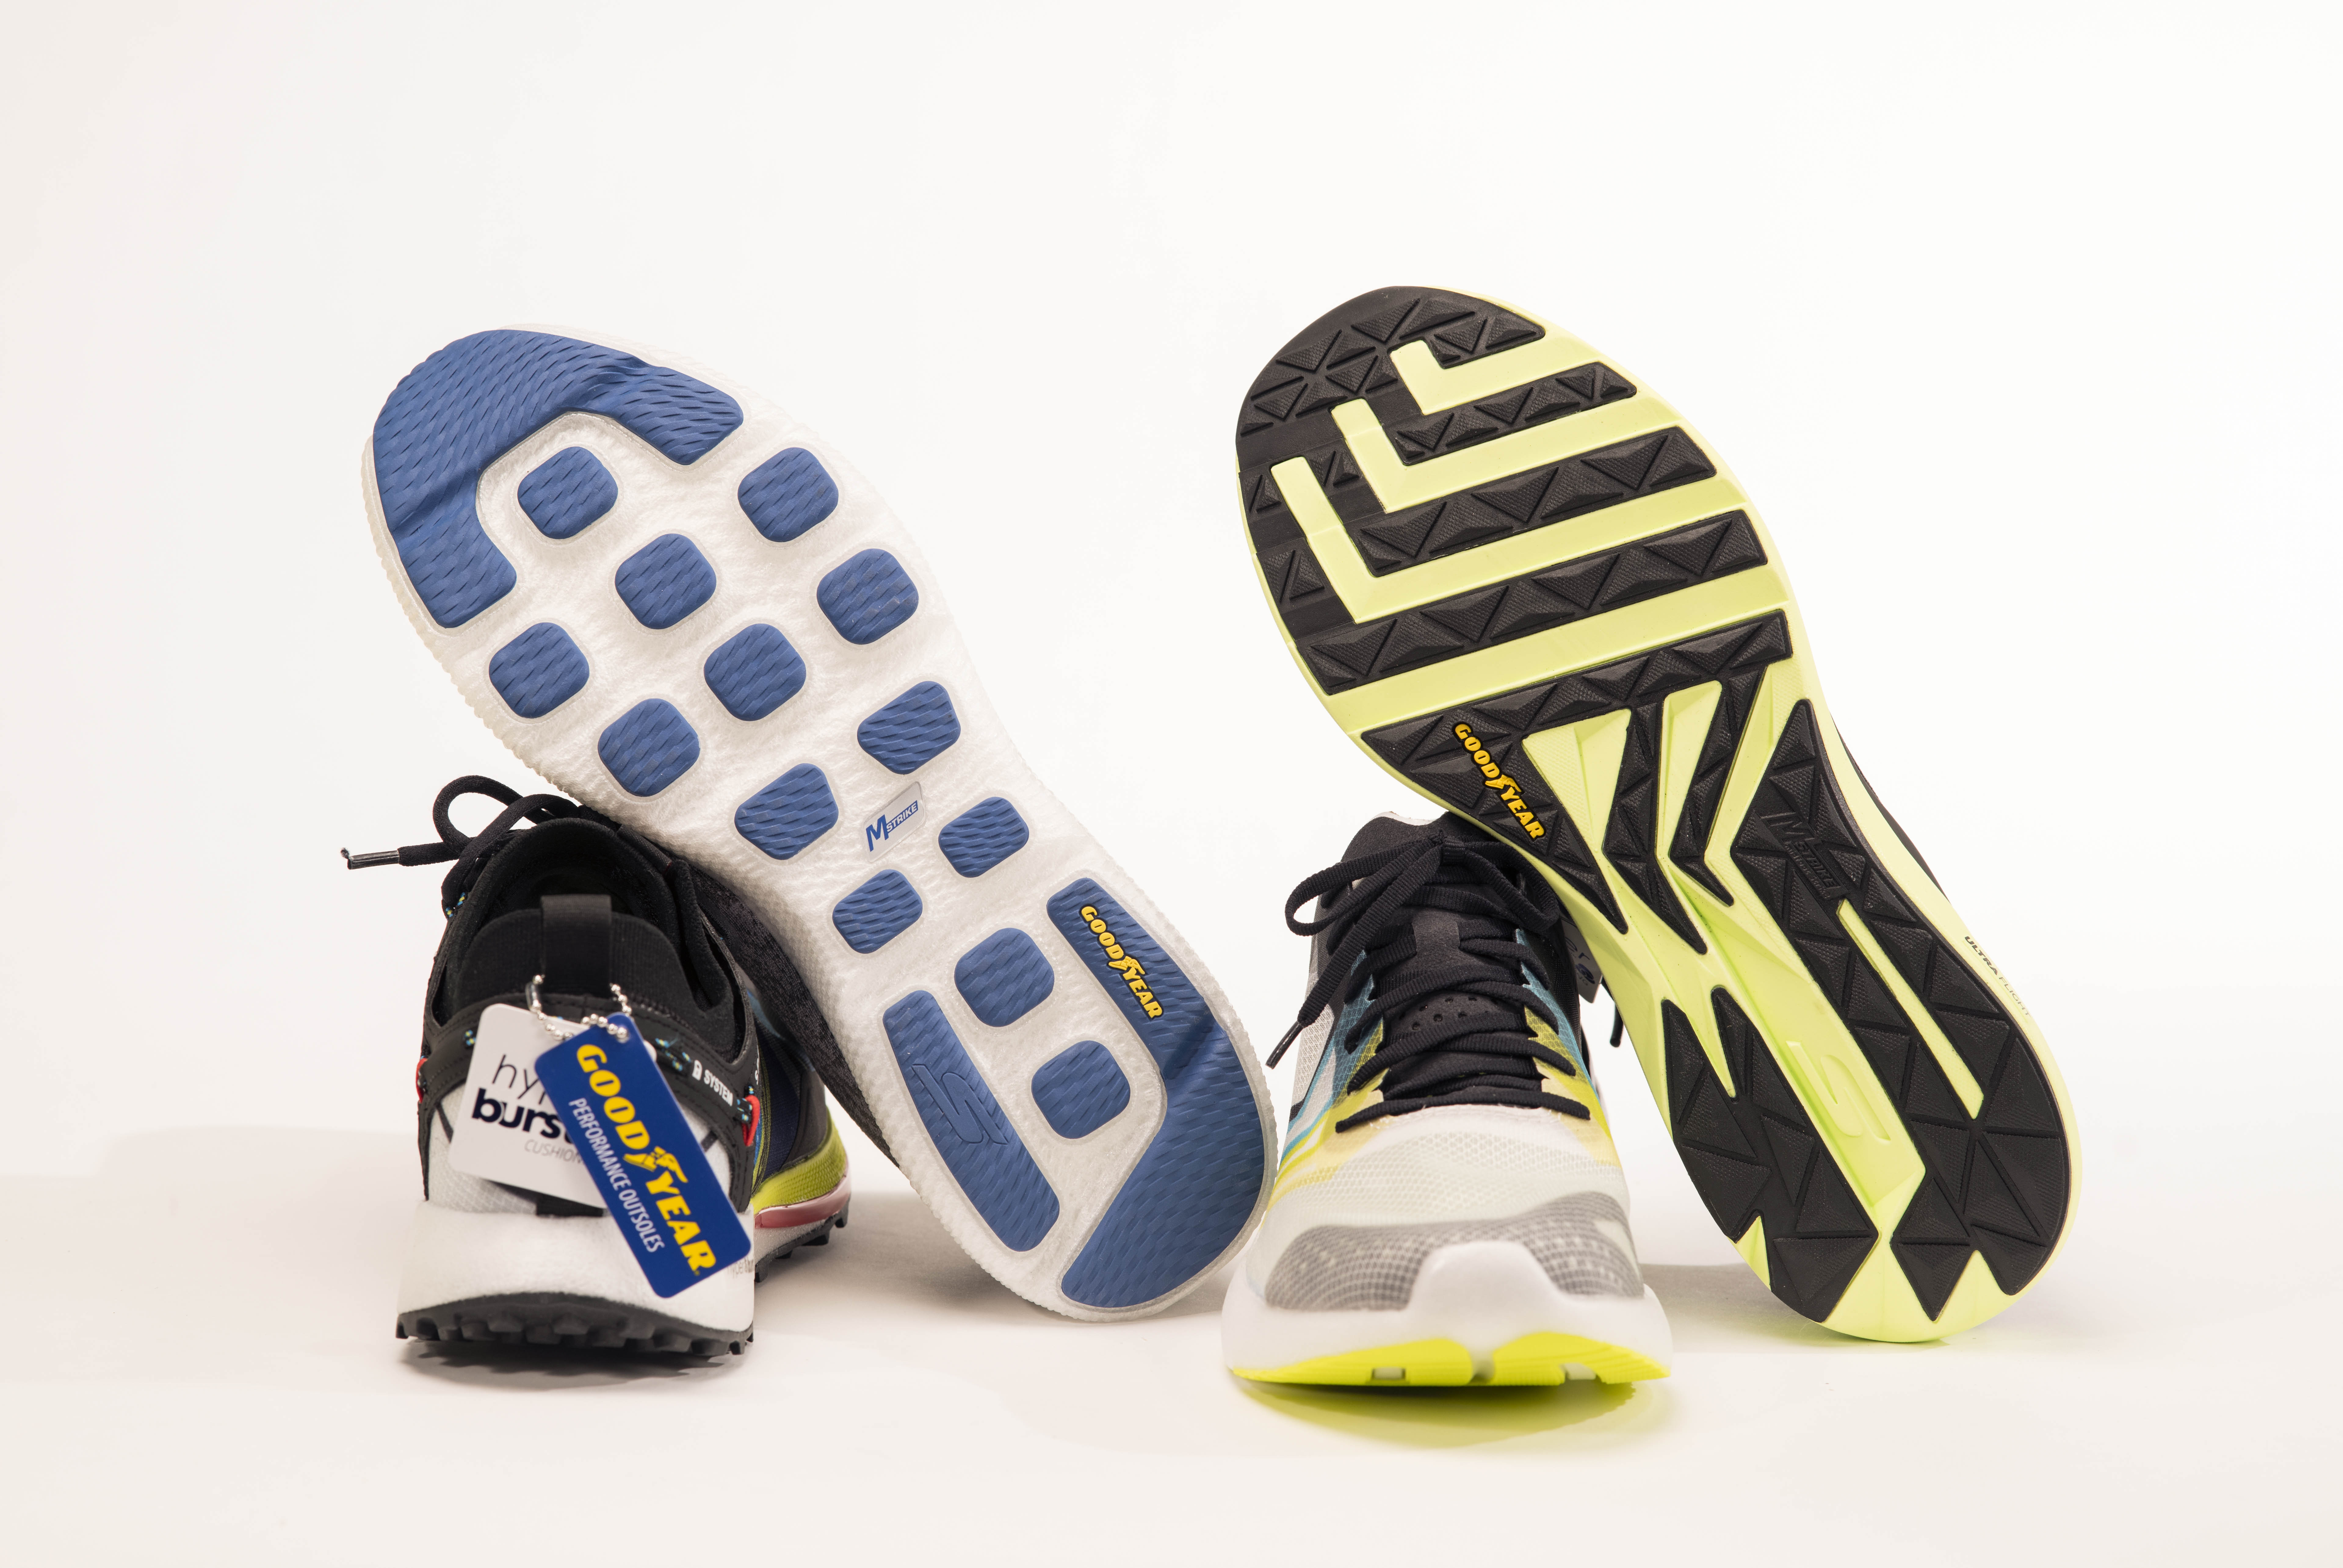 Skechers partners with Goodyear Tire